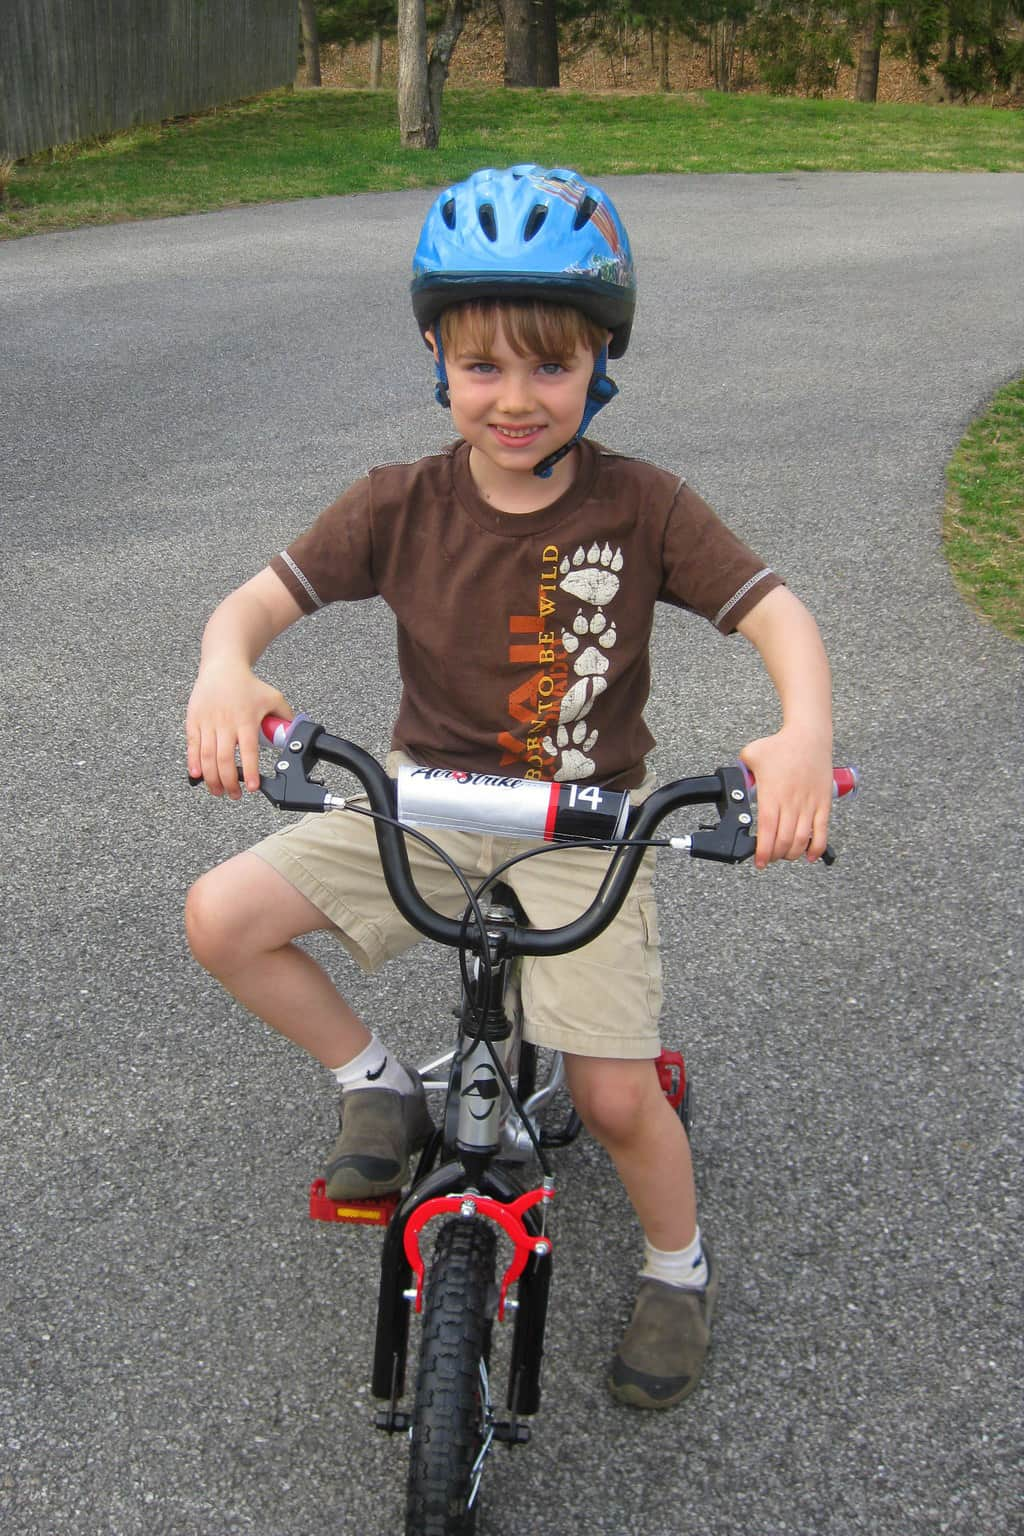 At What Age Did Your Child Learn to Ride a Bike?